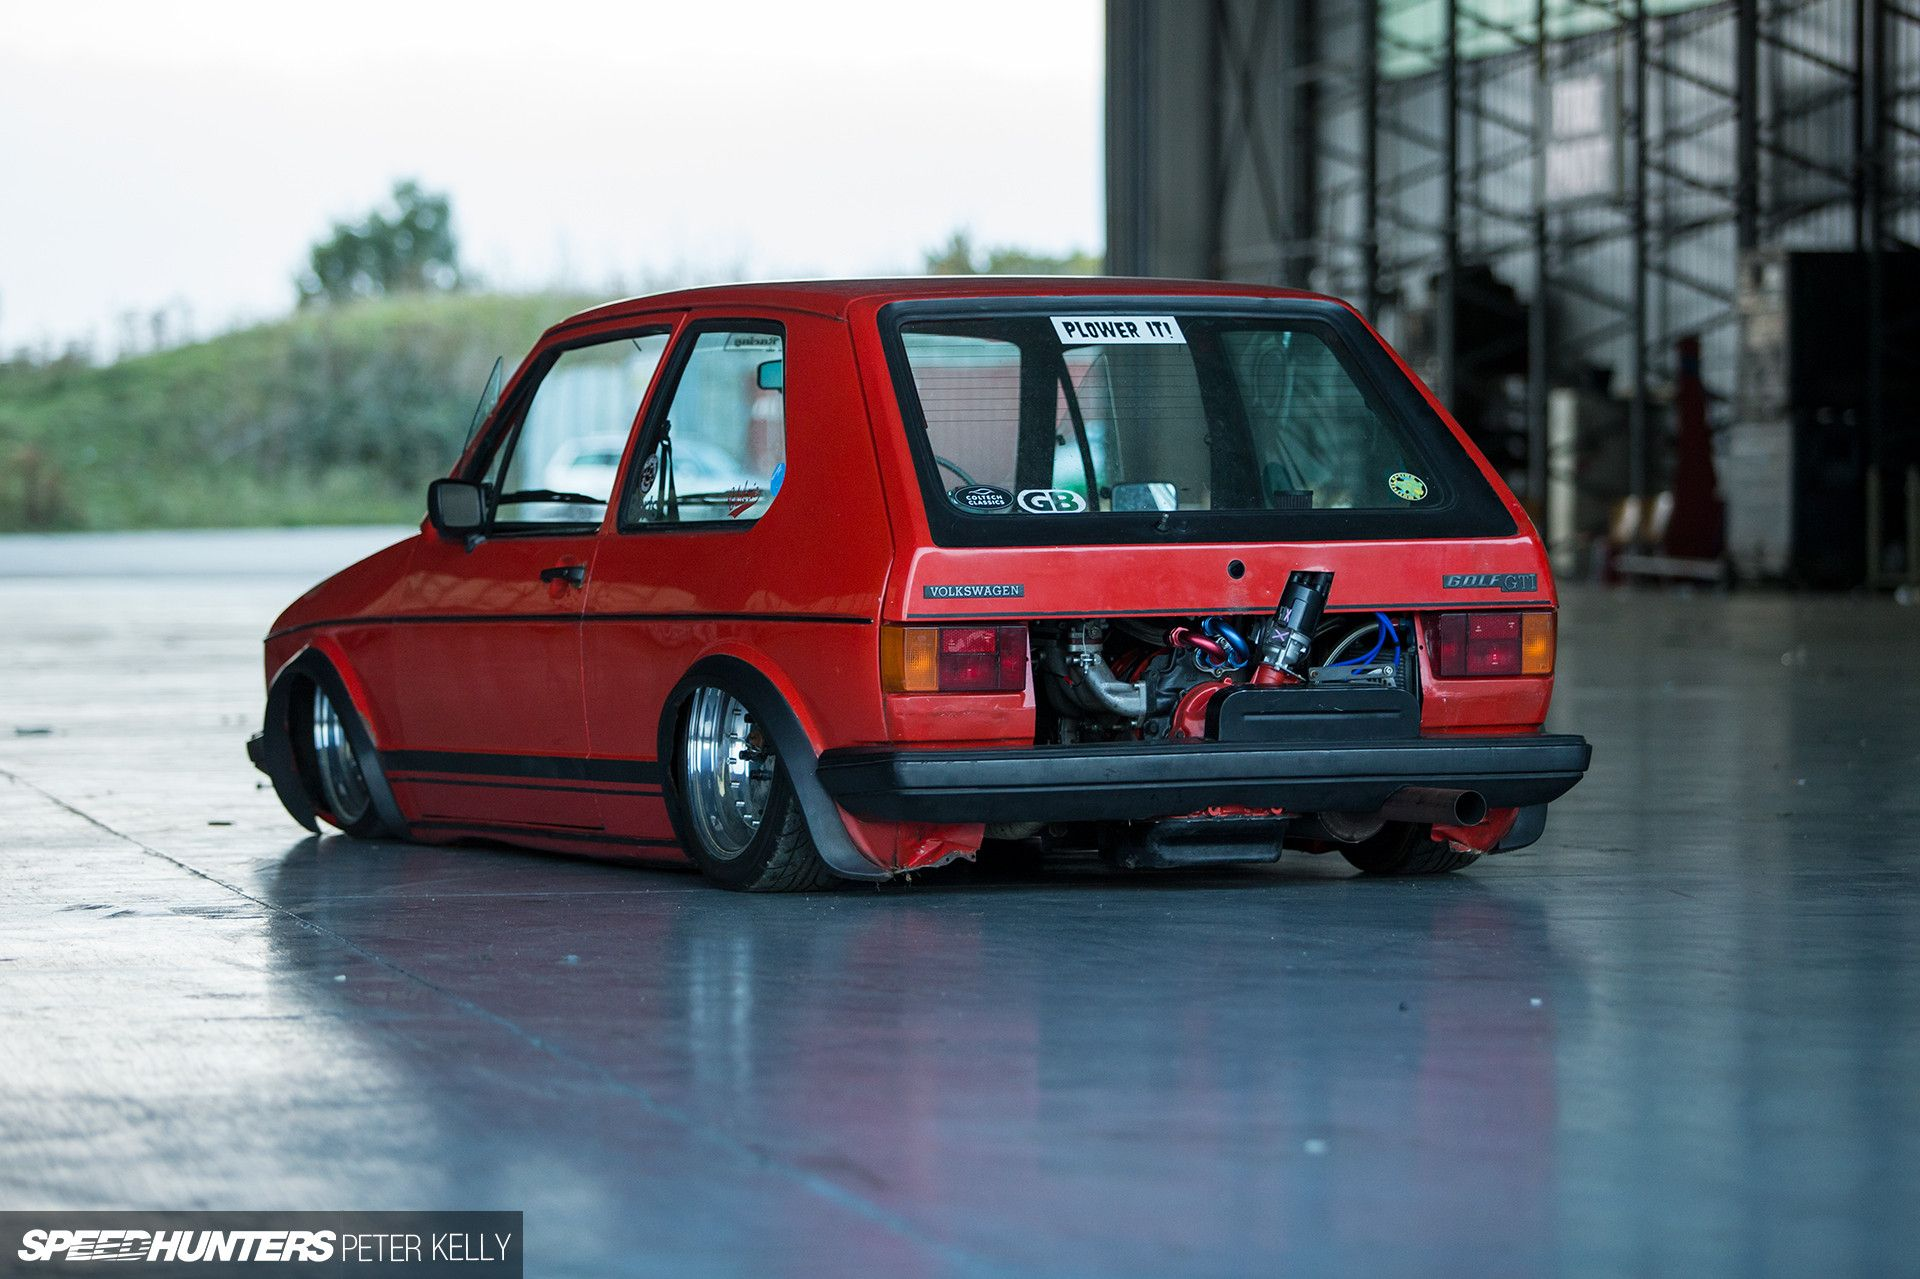 VW Golf GTI Mk1 Rotiform, Forge Motorsport, Pipercross, Airlift  Performance, Powerflex, Scorpion | German Rides | Pinterest | Forge  Motorsport, ...